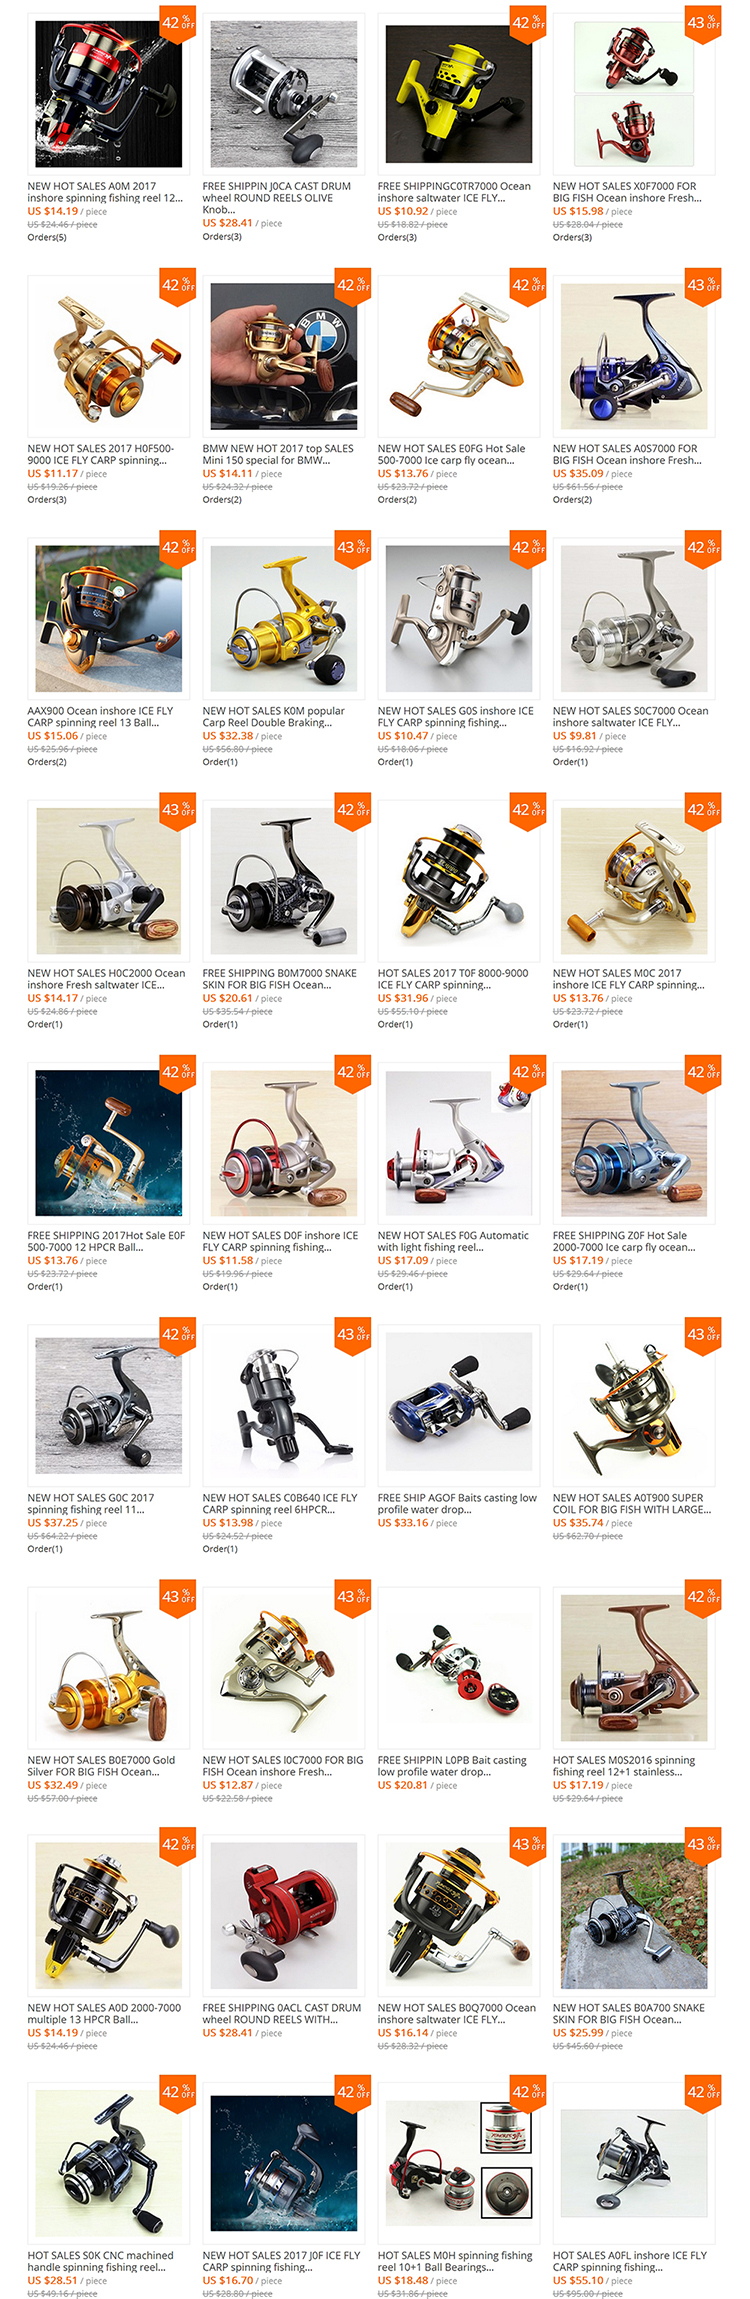 Fish Reels - Shop Cheap Fish Reels from China Fish